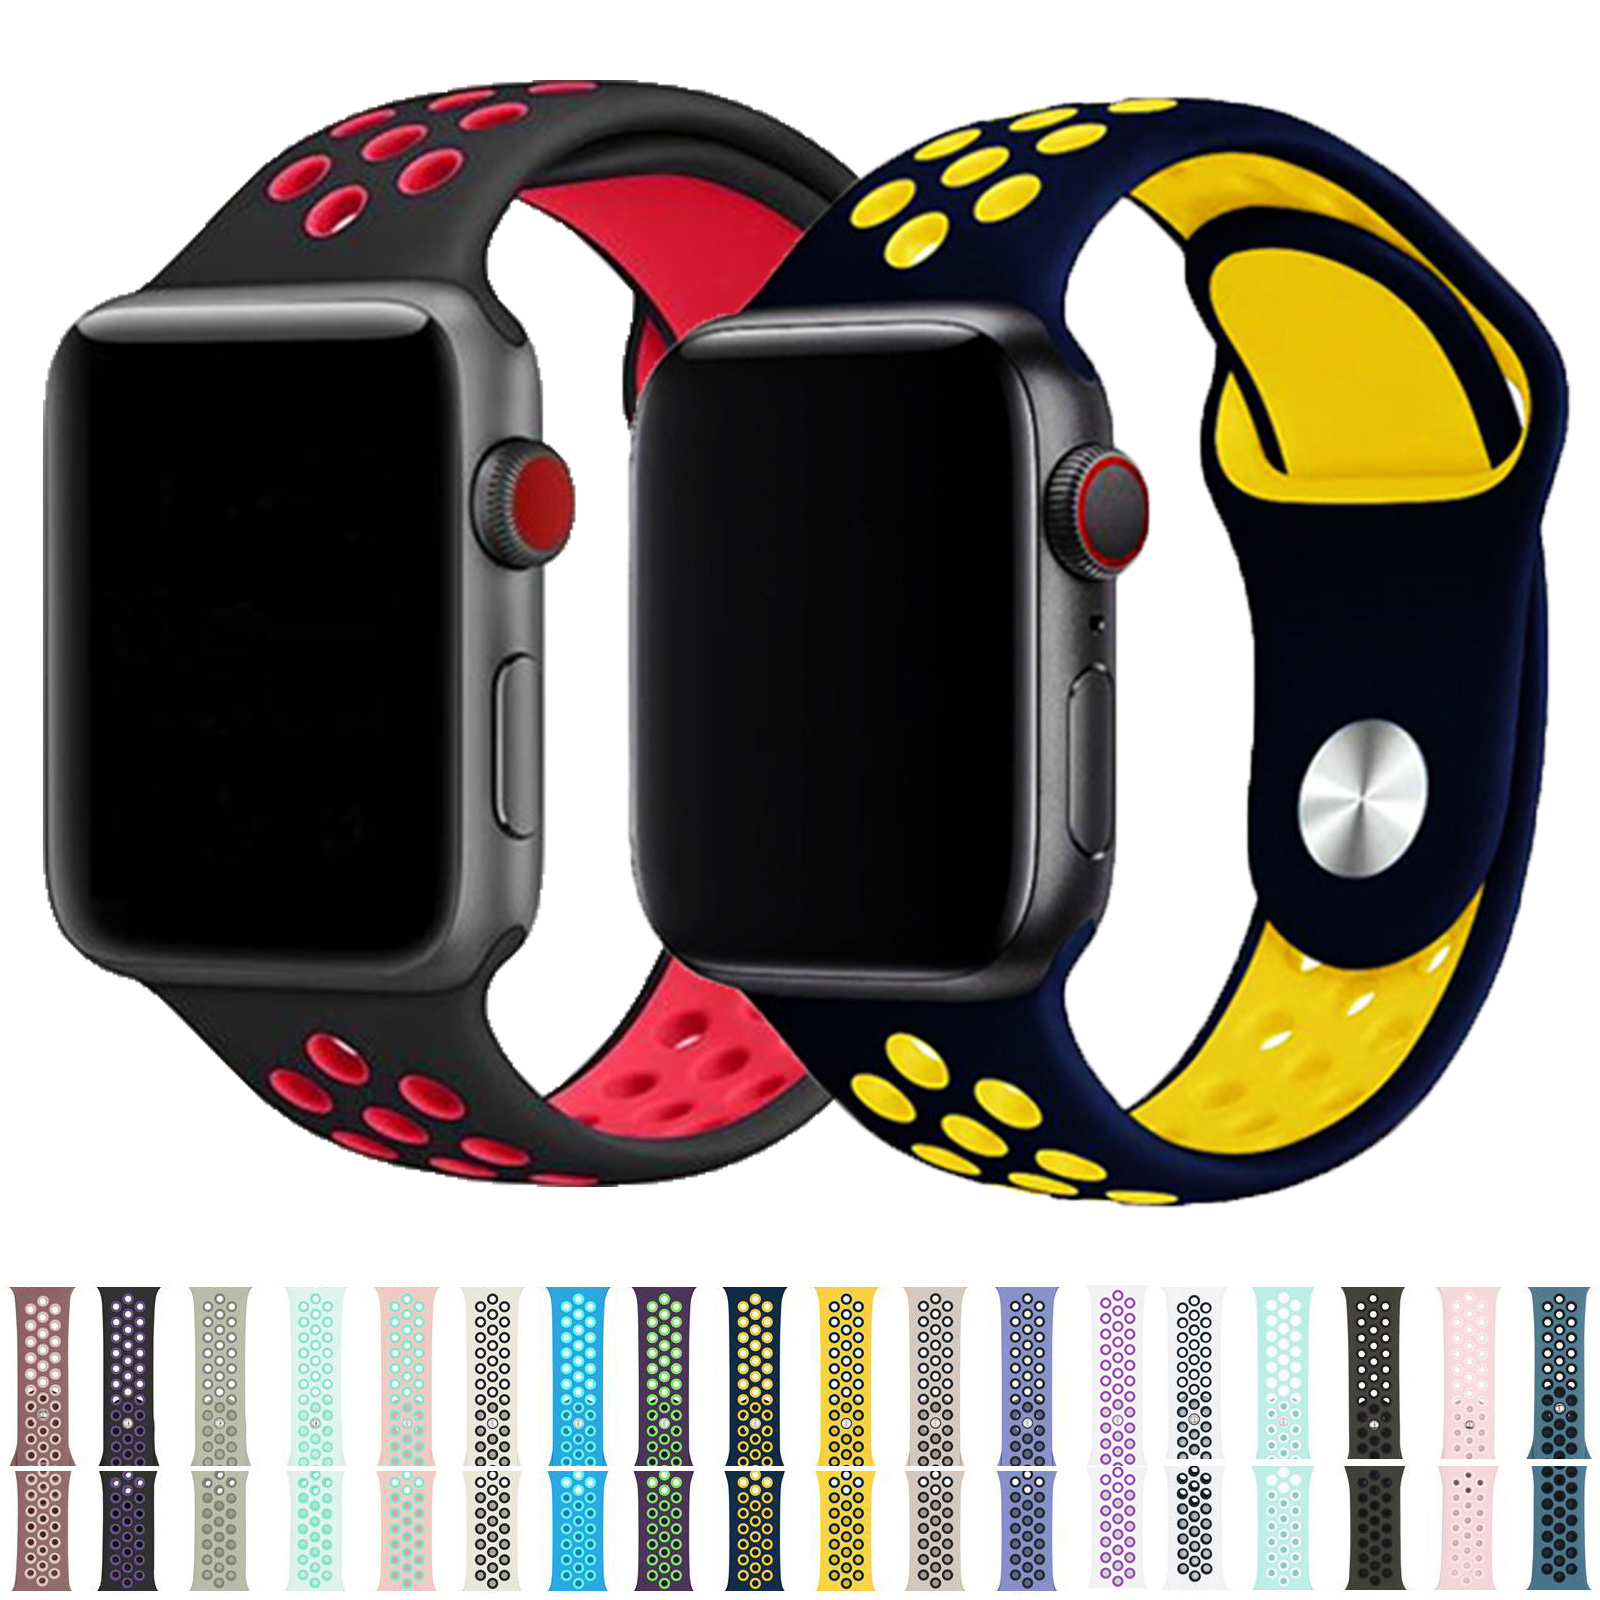 New Breathable Silicone Sports Band For Apple Watch 5 4 3 2 1 42MM 38MM Rubber Strap Bracelet Bands For Iwatch 5 4 3 40mm 44mm